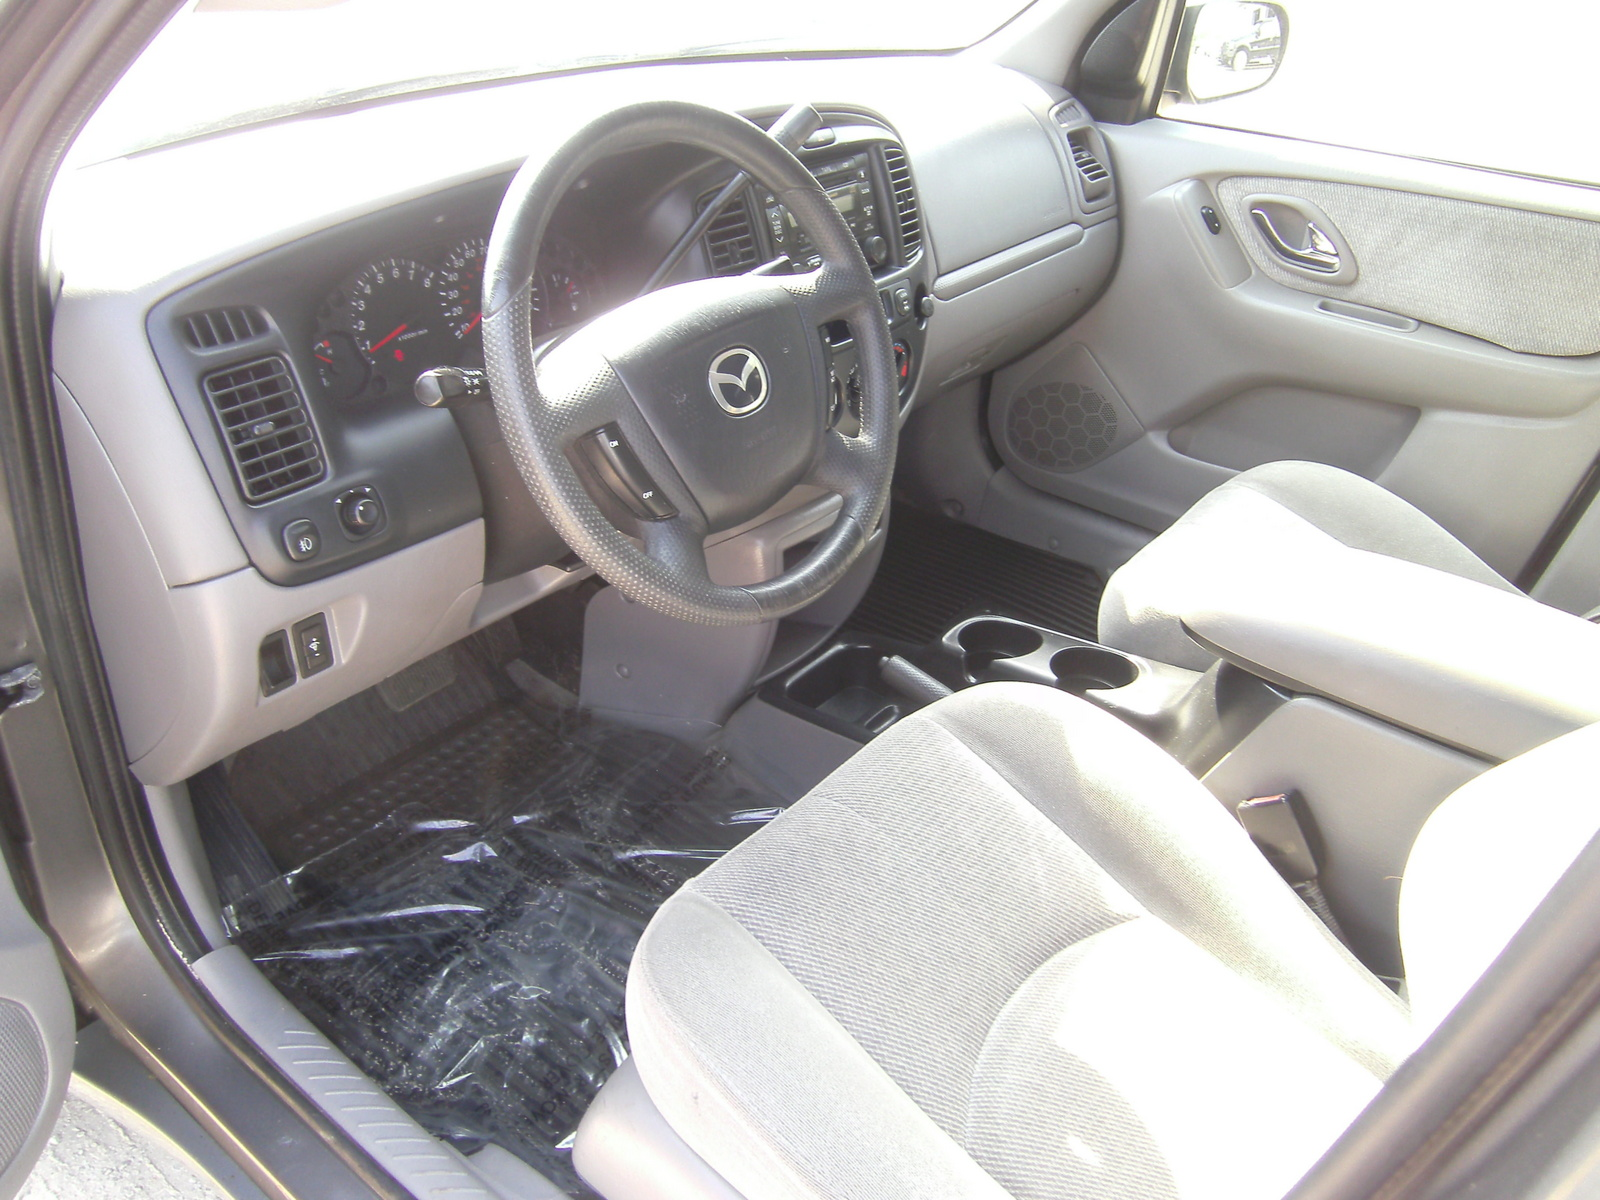 2002 mazda tribute interior pictures cargurus. Black Bedroom Furniture Sets. Home Design Ideas